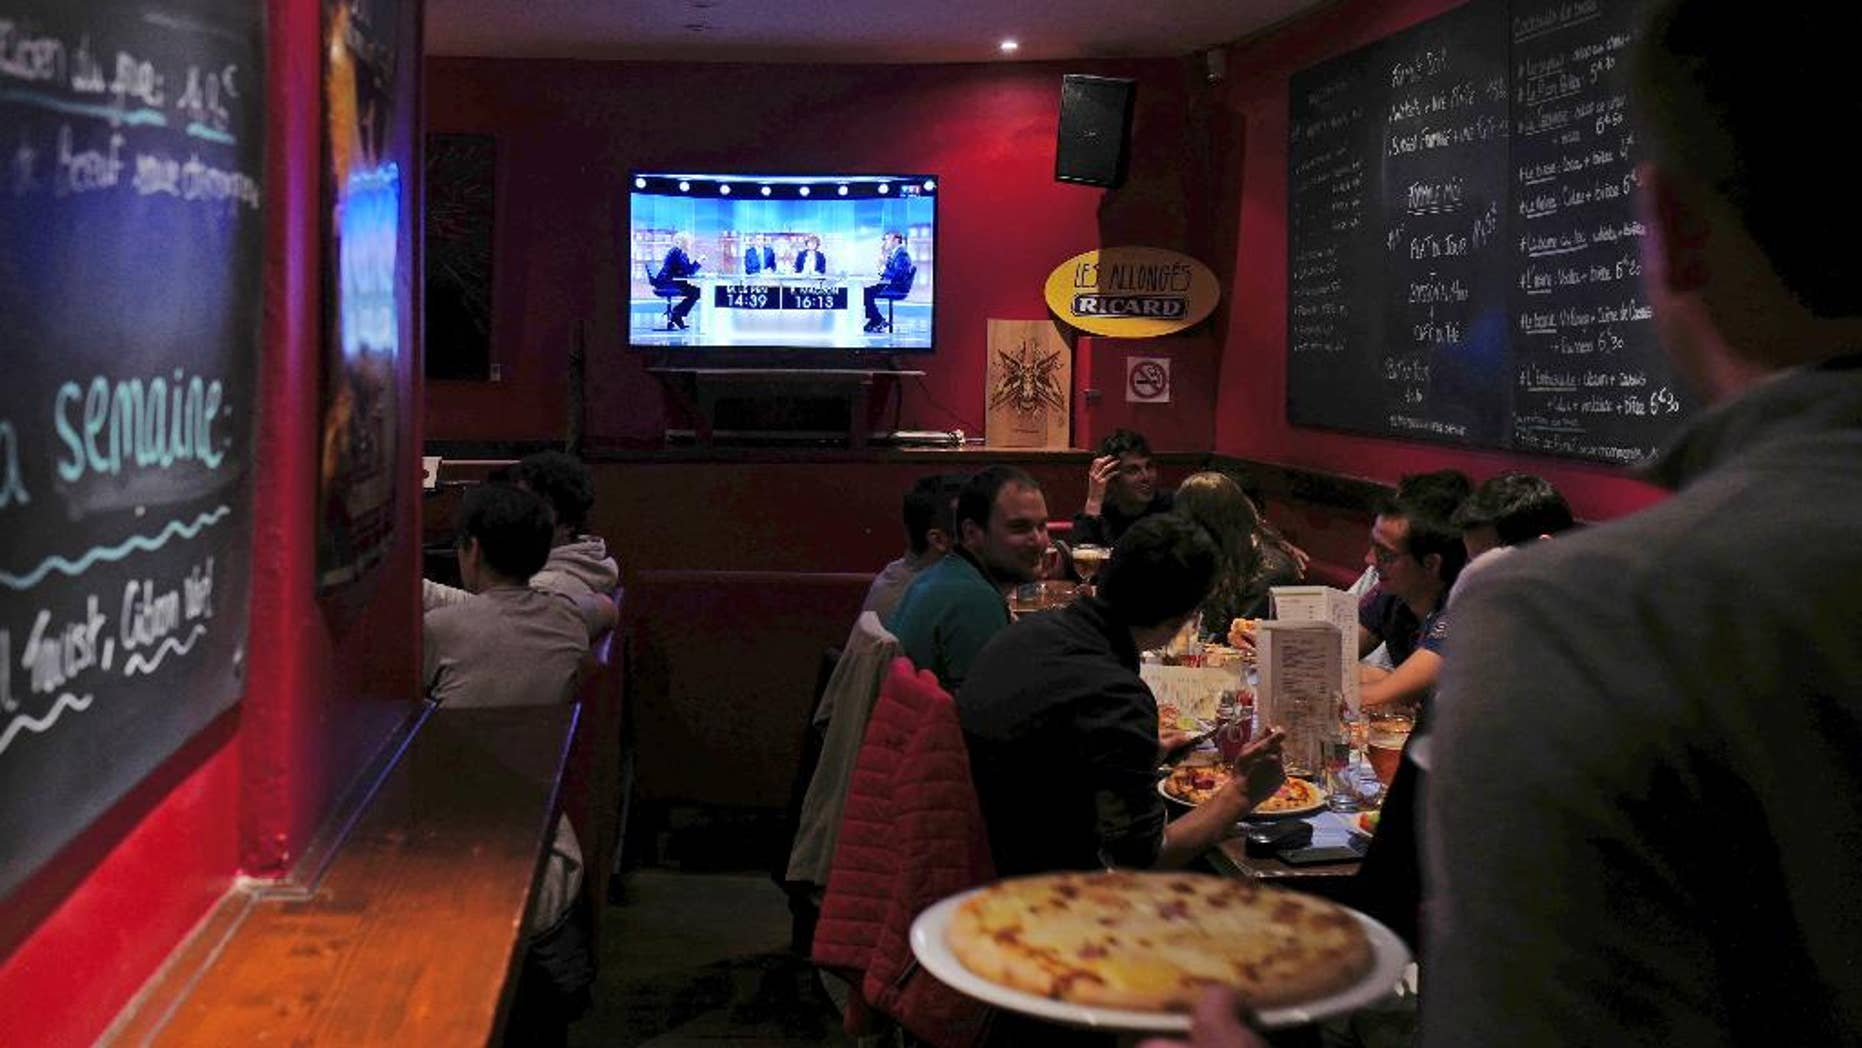 People watch a live broadcast television debate with French centrist presidential candidate Emmanuel Macron, right, and far-right candidate Marine Le Pen, in a restaurant in Lille, northern France, Wednesday, May 3, 2017.  Le Pen and Emmanuel Macron exchanged barbs and insults on Wednesday during their sole televised debate ahead of Sunday's runoff election. (AP Photo/Michel Spingler)